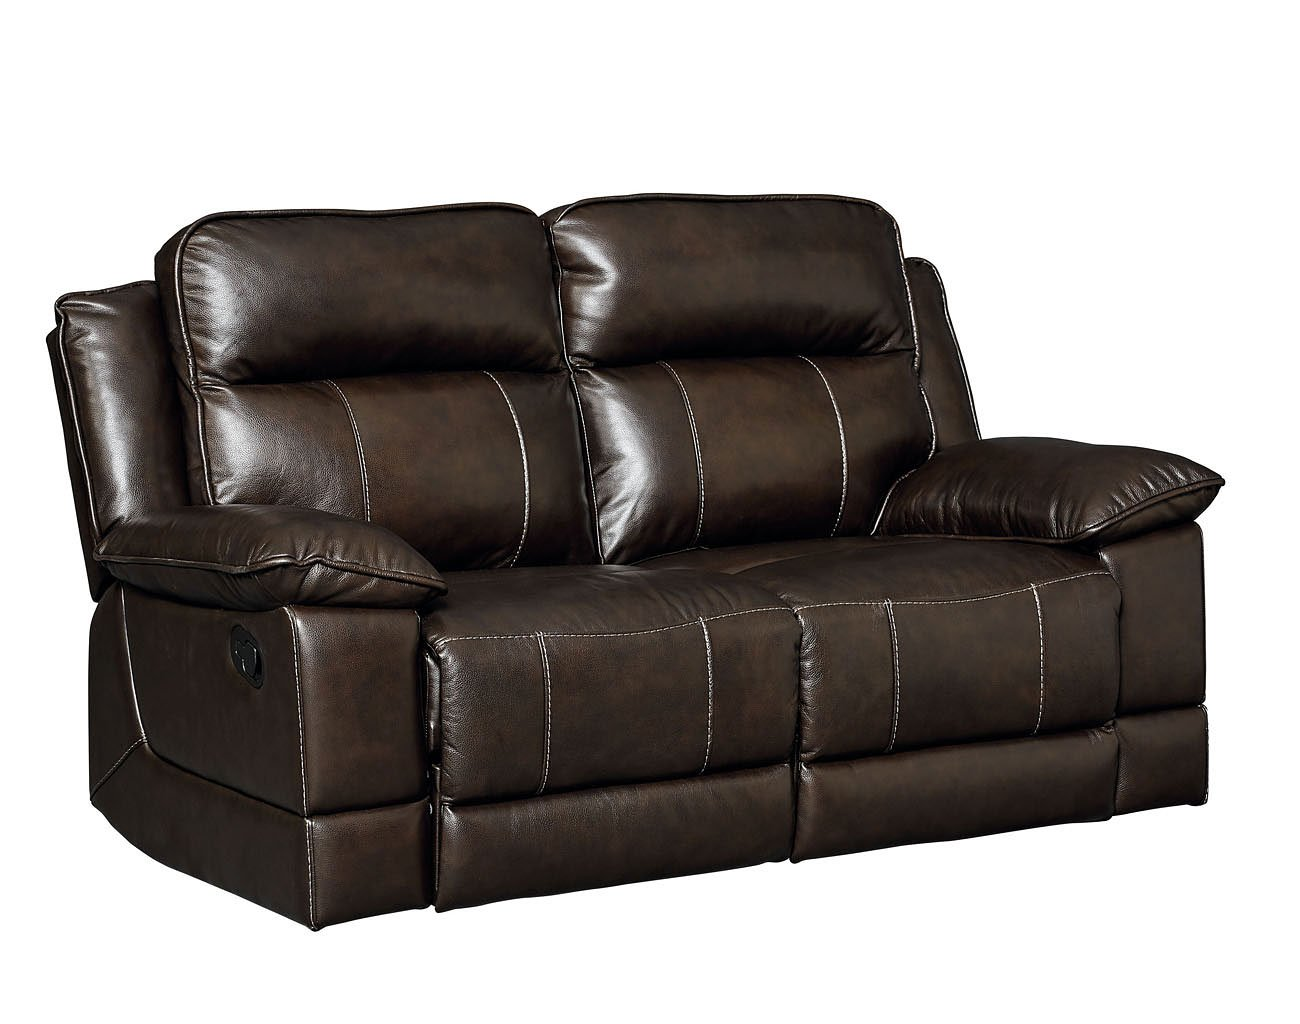 Sequoia Reclining Living Room Set Standard Furniture ... on Sequoia Outdoor Living id=34326